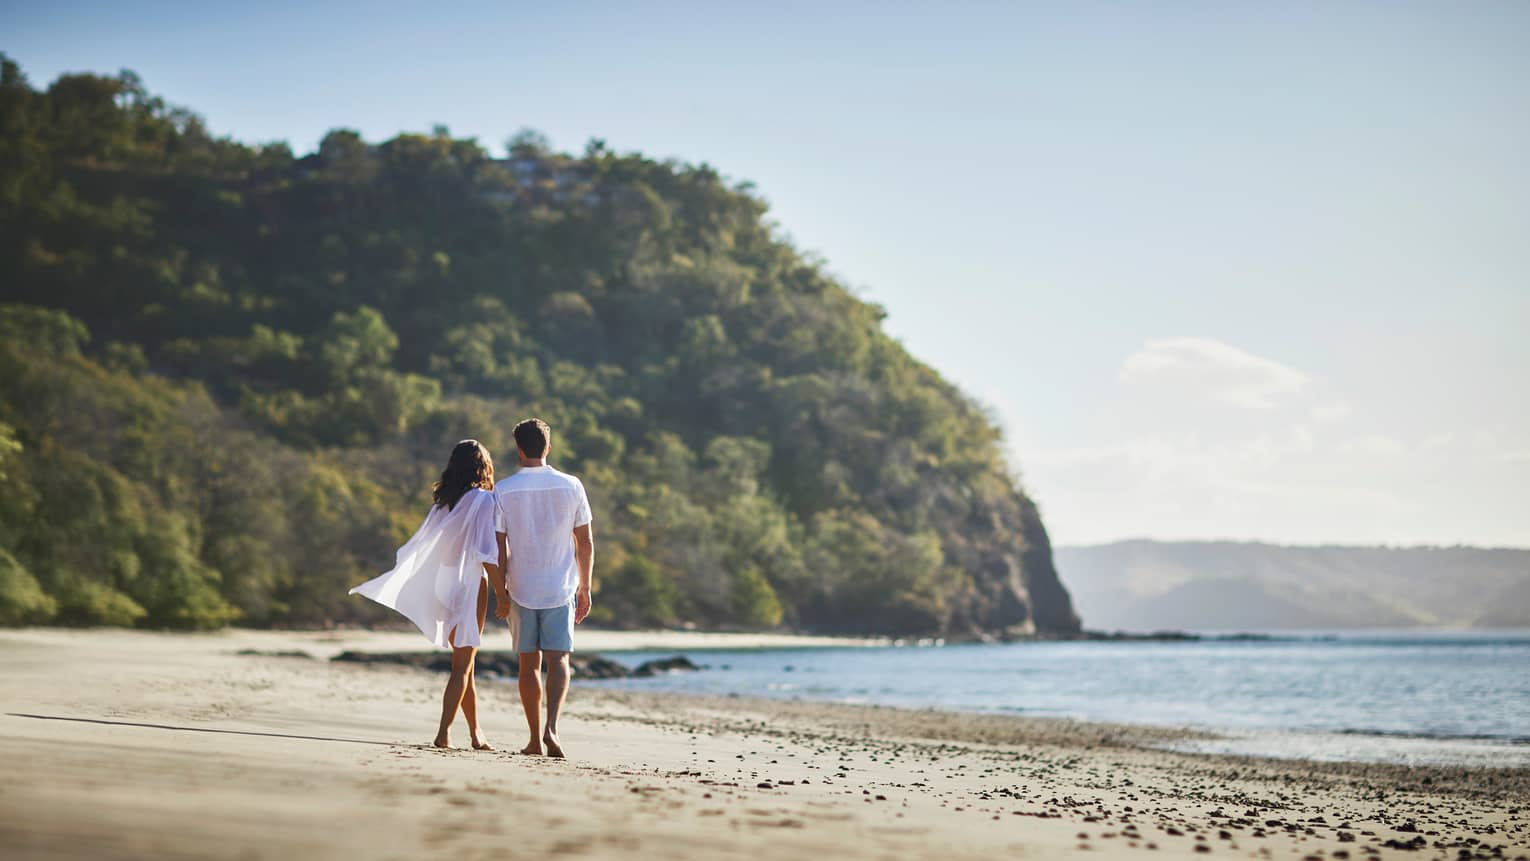 Back of man and woman in sheer white shirt walking barefoot on sandy beach, mountains in background